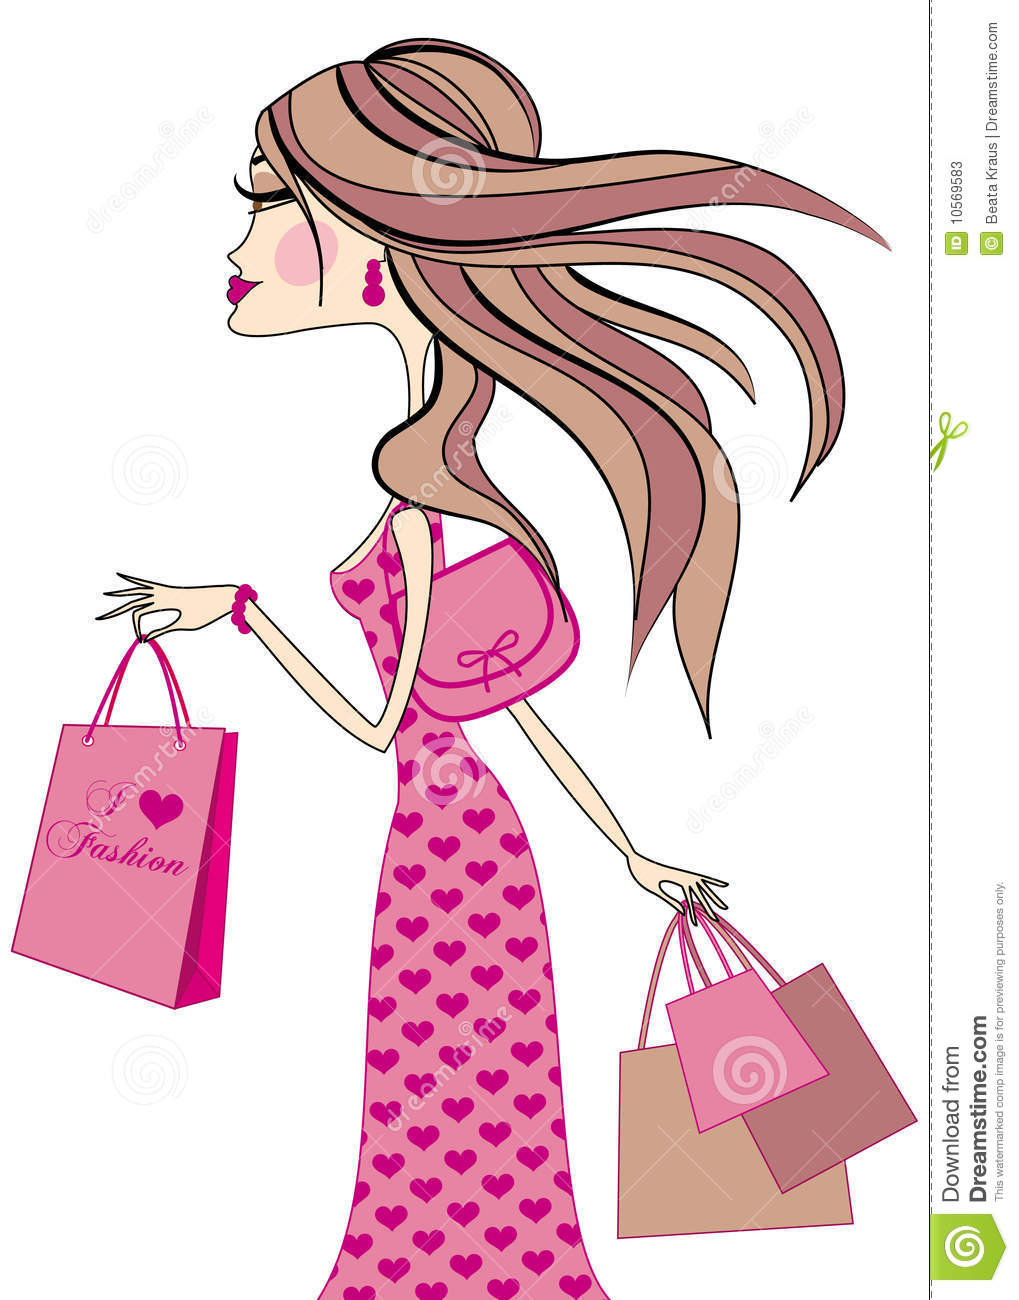 I Love Fashion Stock Vector. Illustration Of Finger, Hair